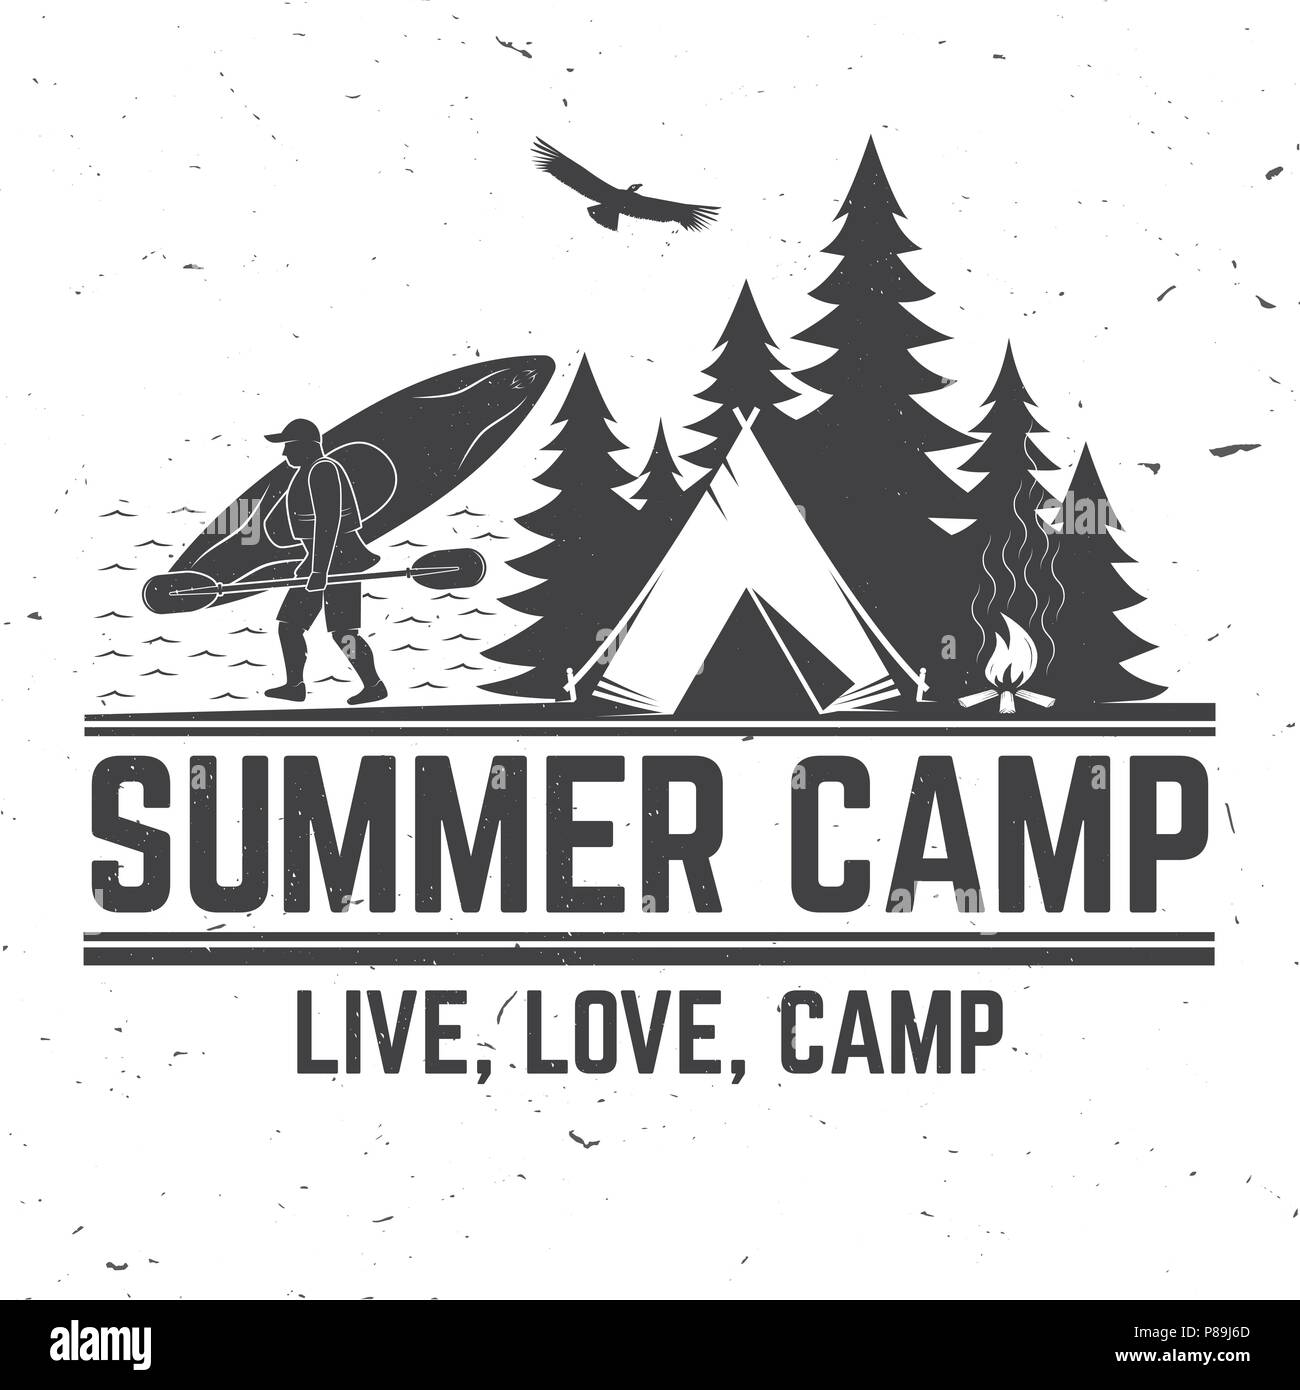 Summer camp. Vector illustration. Concept for shirt or logo, print, stamp or tee. Vintage typography design with canoe, paddle, camping tent and forest silhouette. - Stock Vector